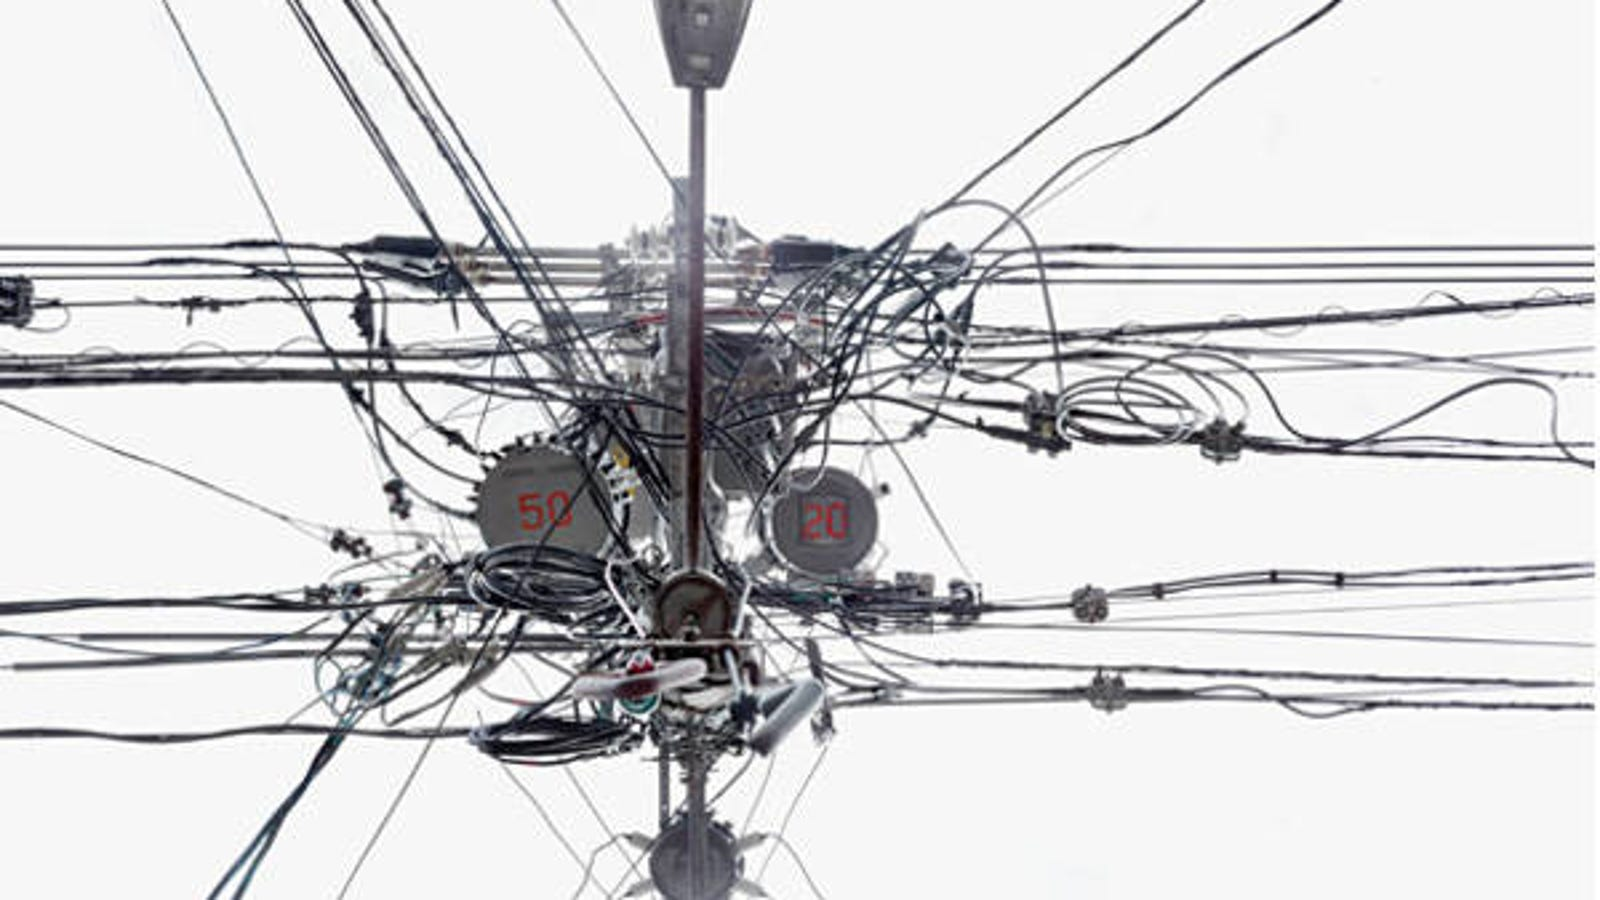 A View of Tangled Telephone Wires in Japan